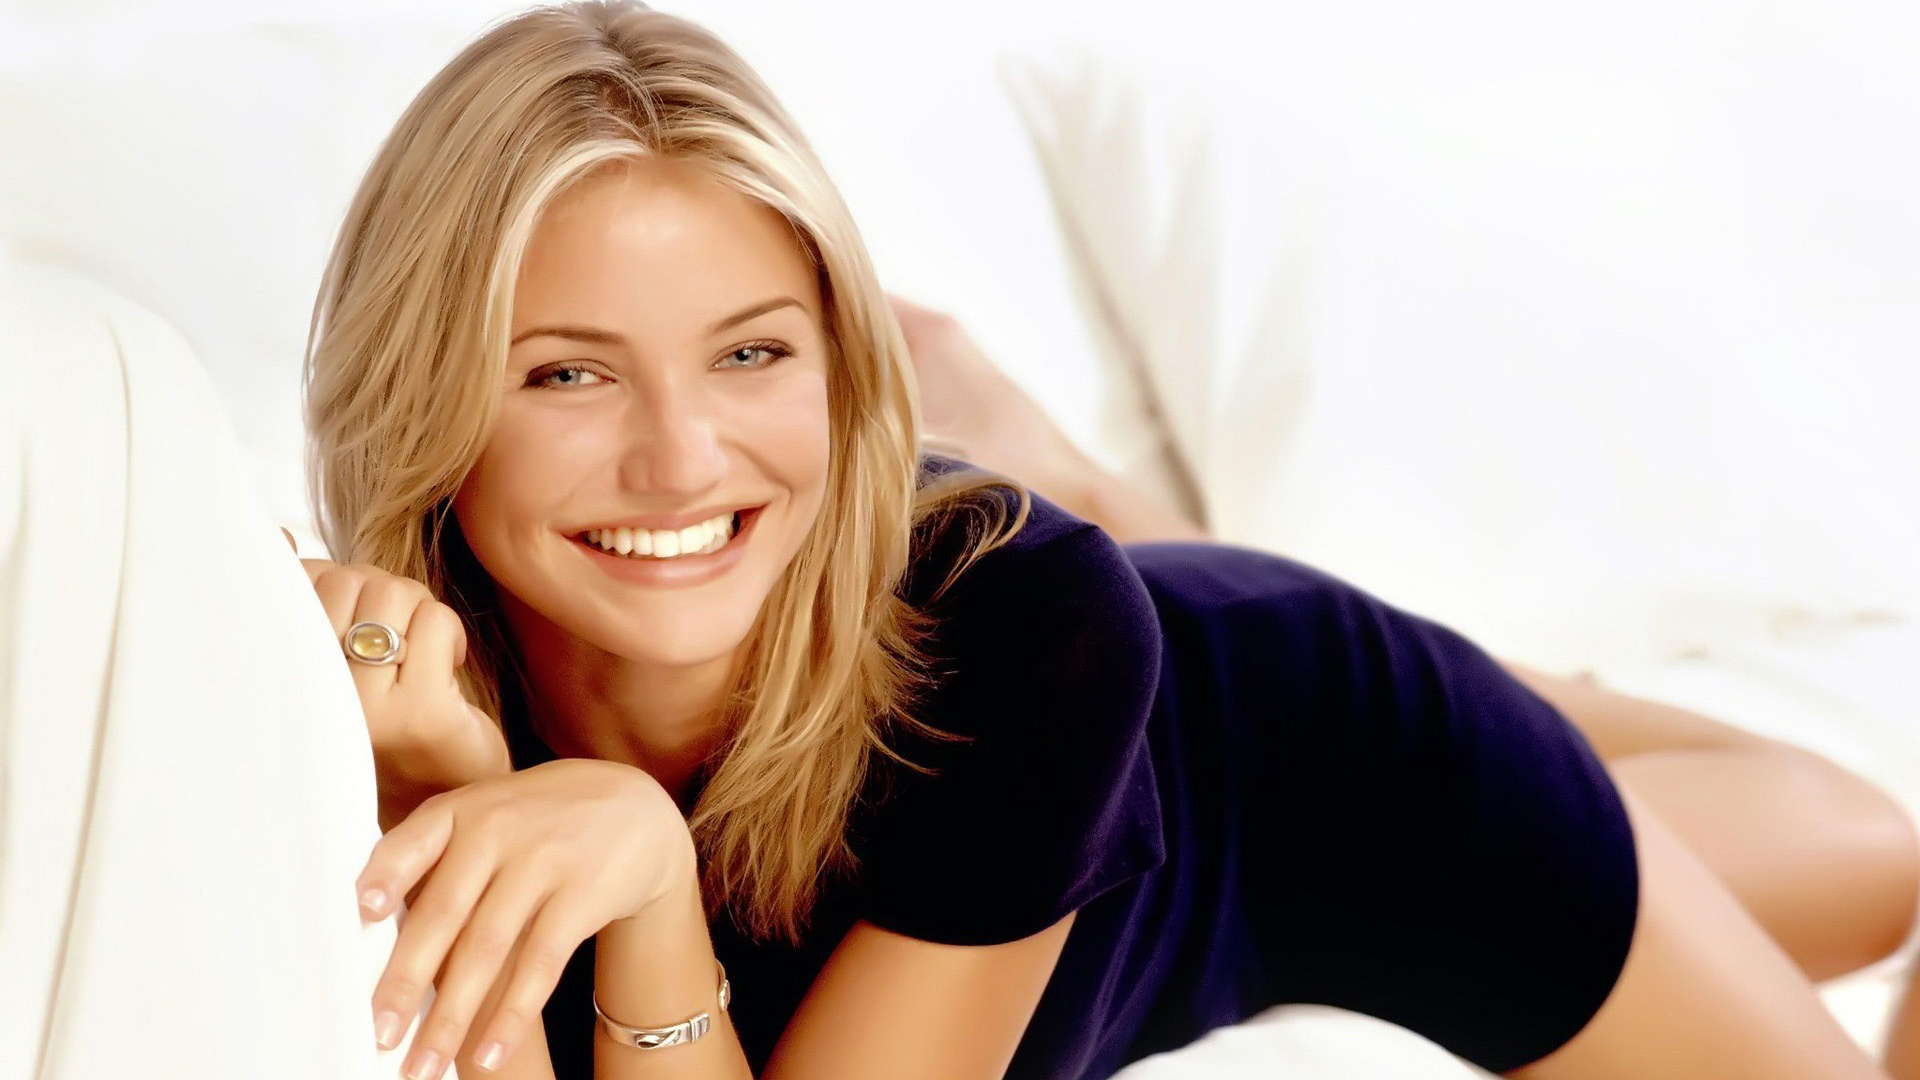 cute cameron diaz smile wallpaper 55489